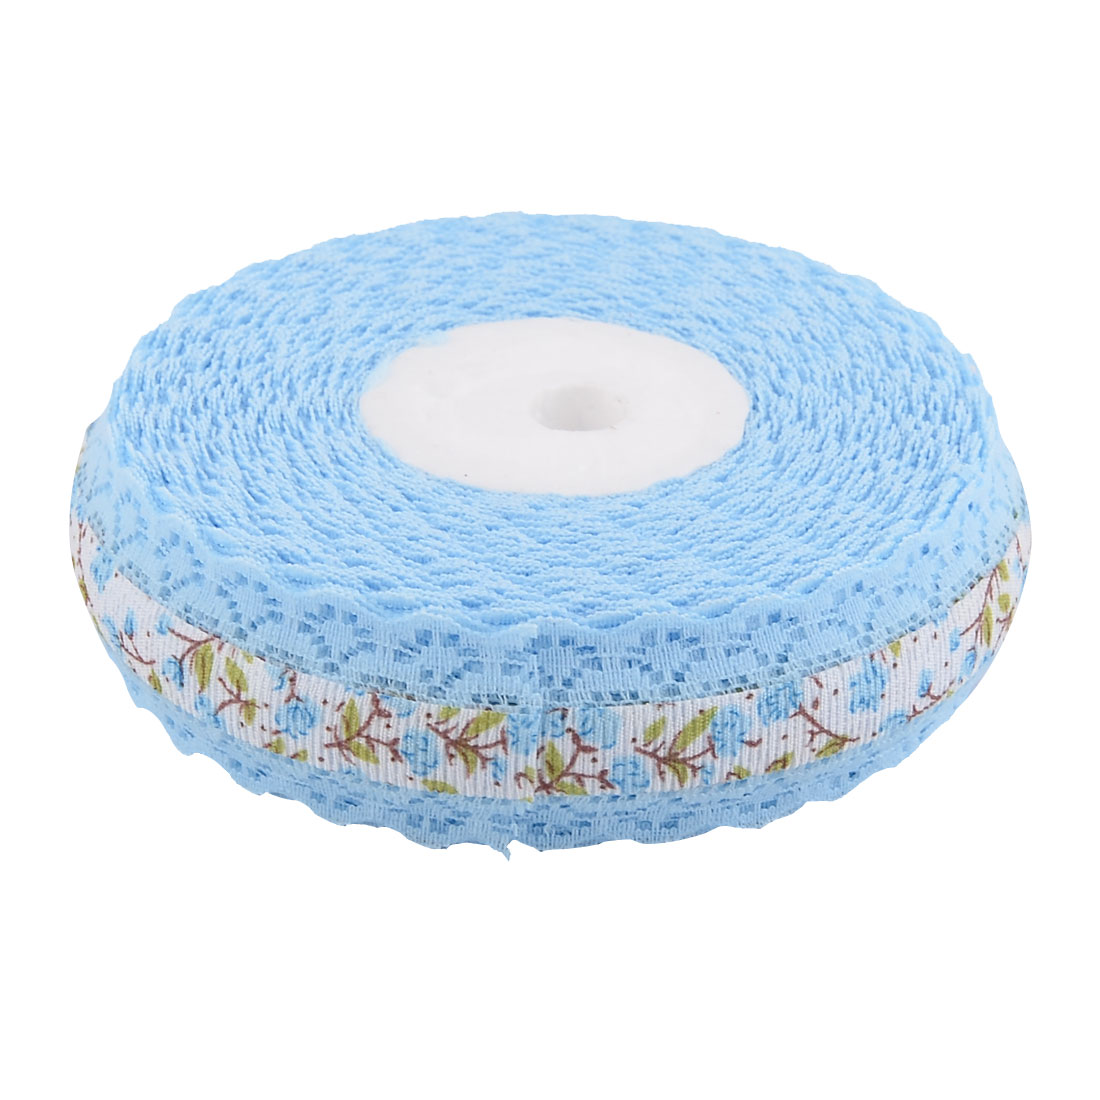 Household Wedding Lace Floral Pattern Decorative Crafting Ribbon Roll Light Blue - image 1 of 4